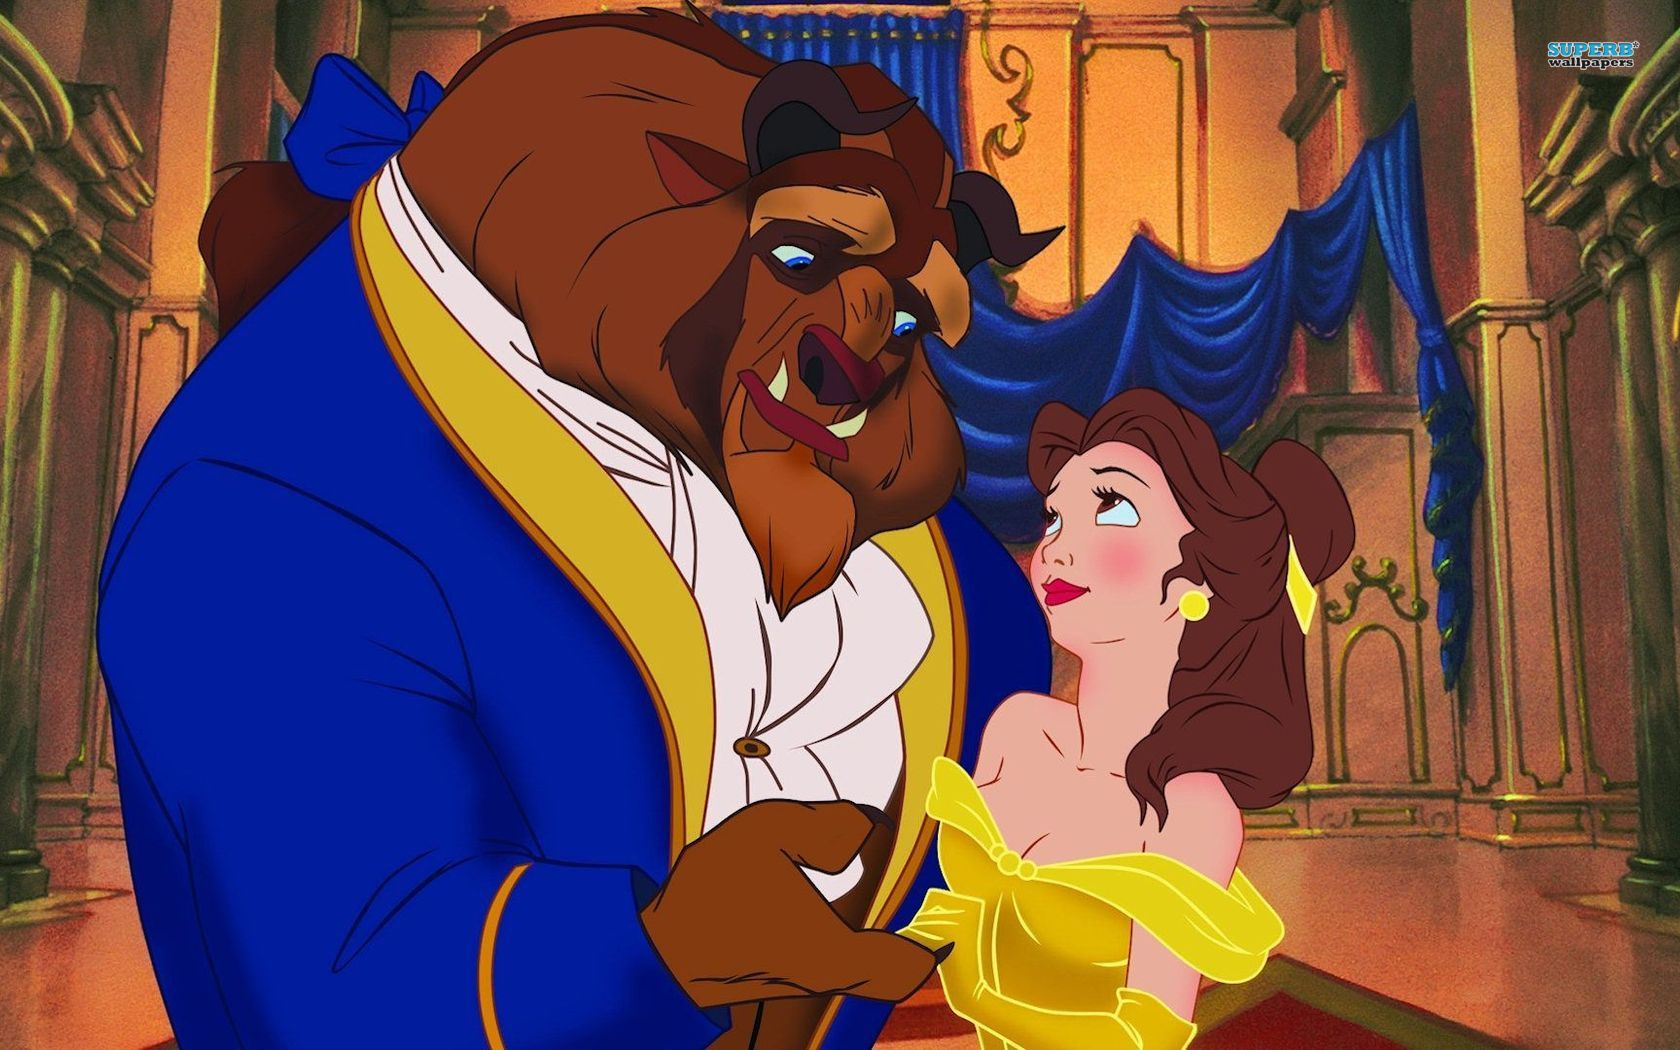 beauty-and-the-beast-11945-1680x1050